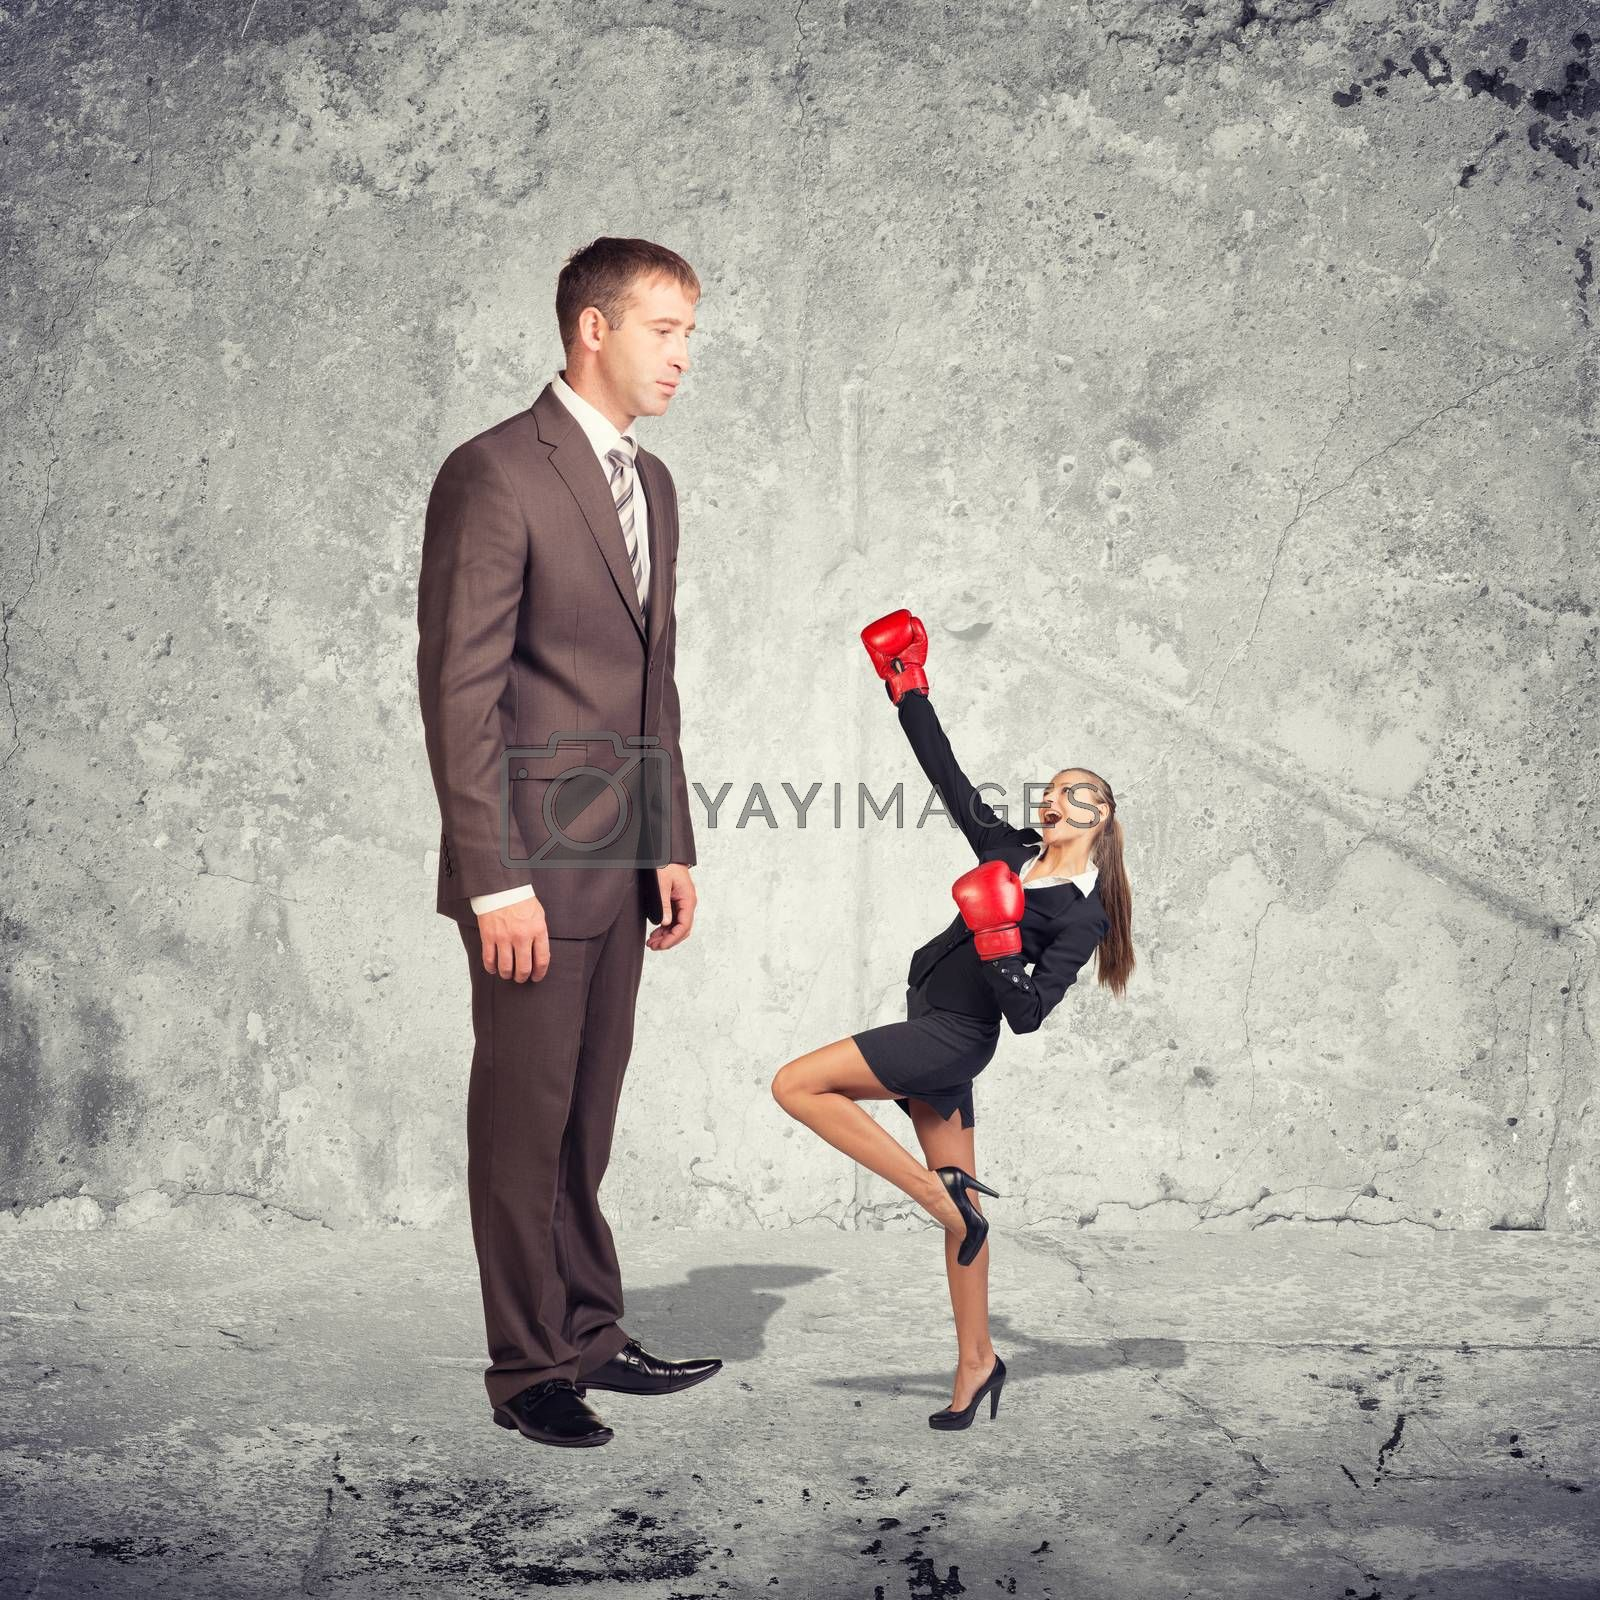 Large businessman in suit looking at small businesswoman in suit and boxing gloves. Concrete wall as backdrop